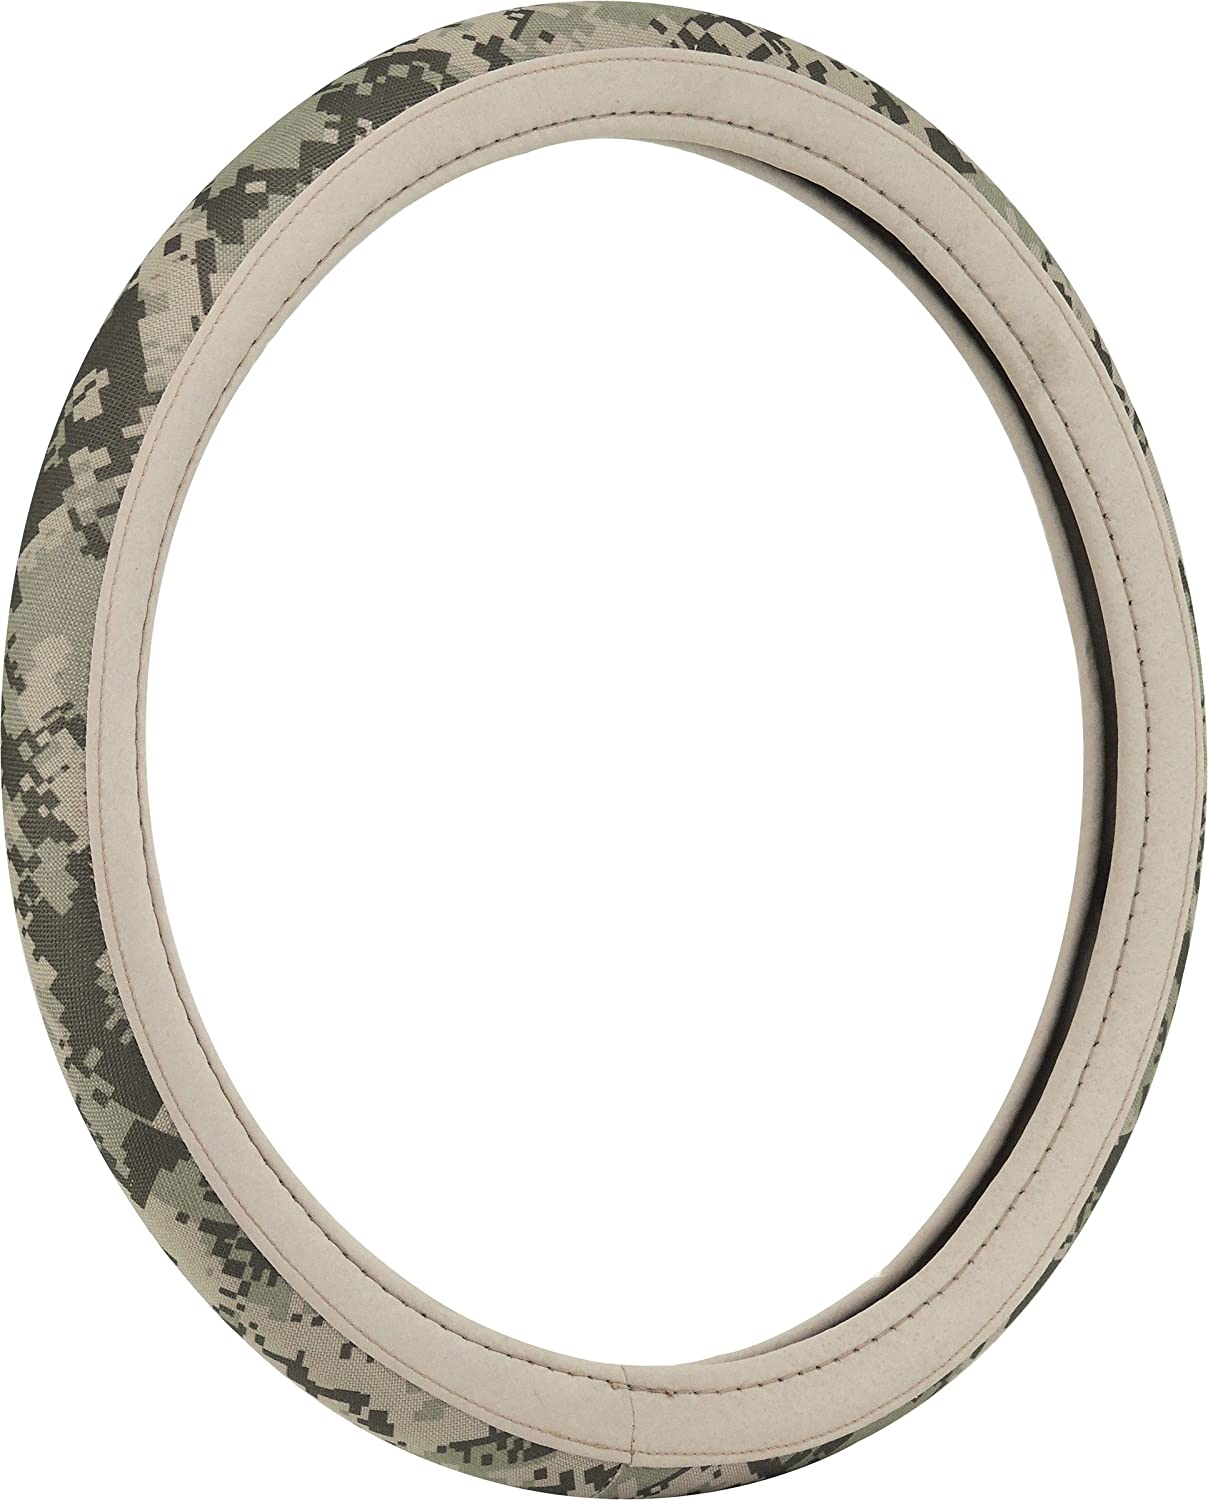 Bell Automotive 22-1-97193-9 Universal Digi Camo Hyper-Flex Core Steering Wheel Cover